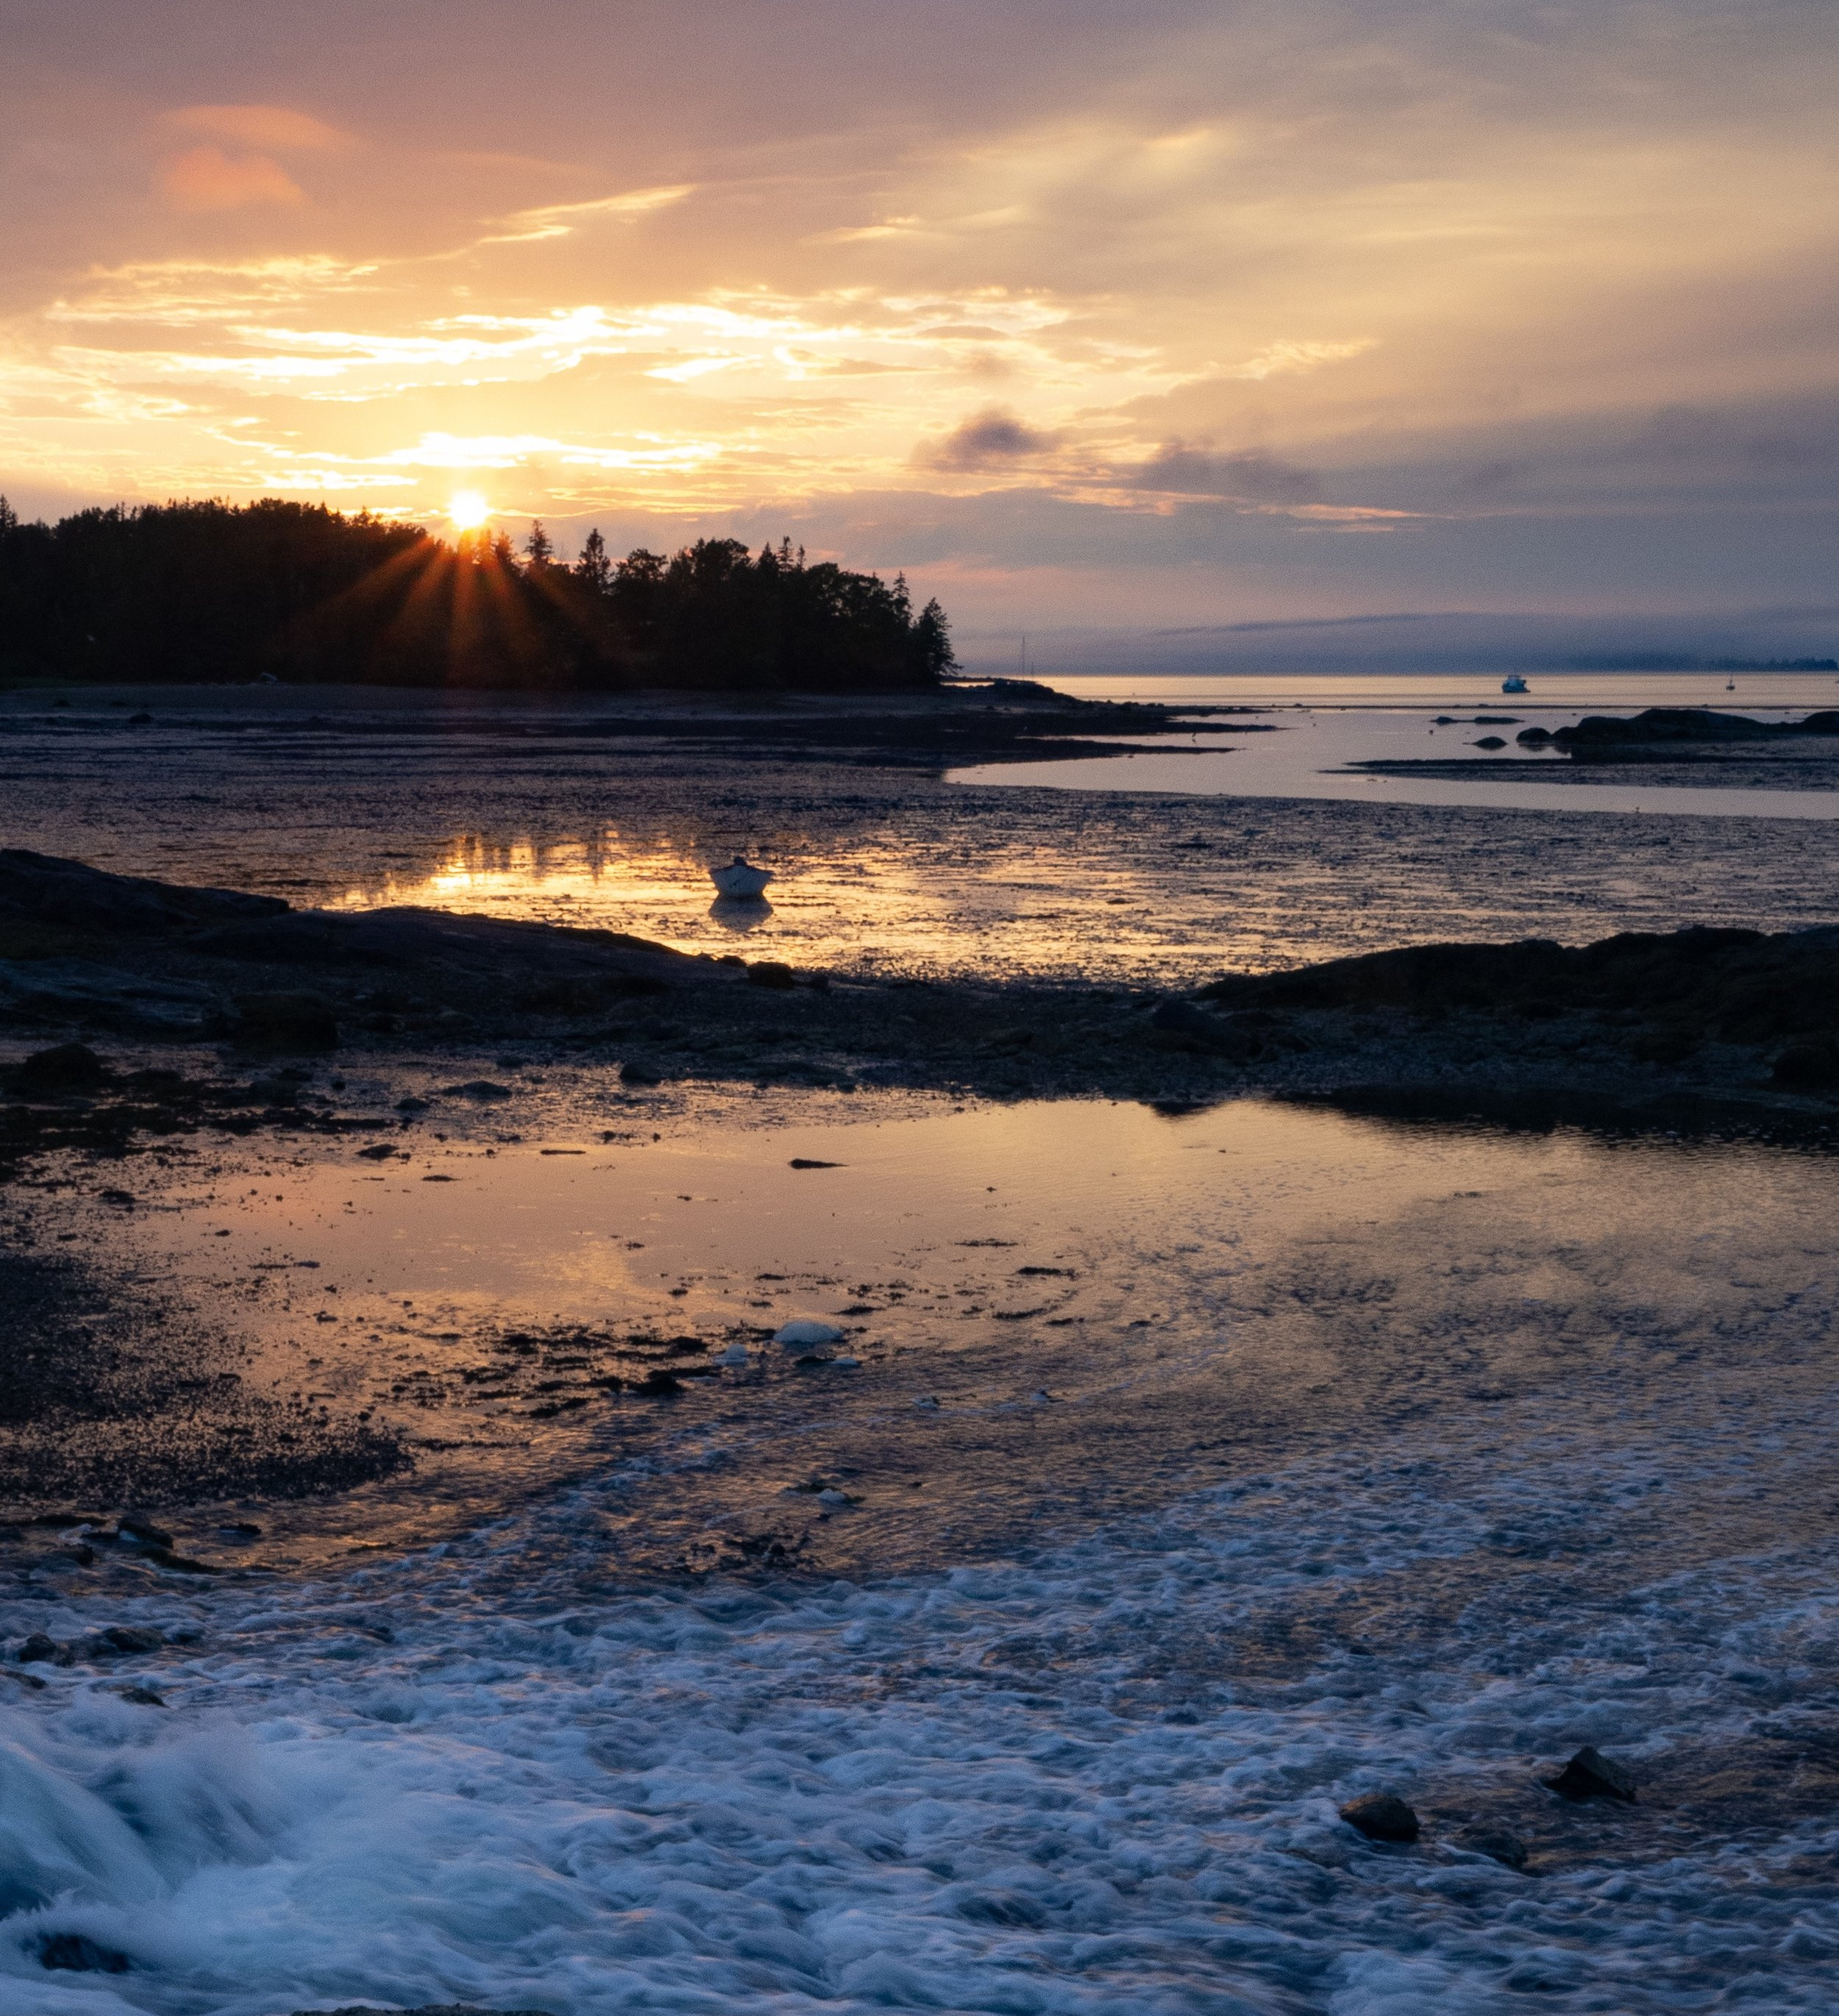 I had been several days in Stonington Maine before I came across this western facing cove with the sun and the tides just right